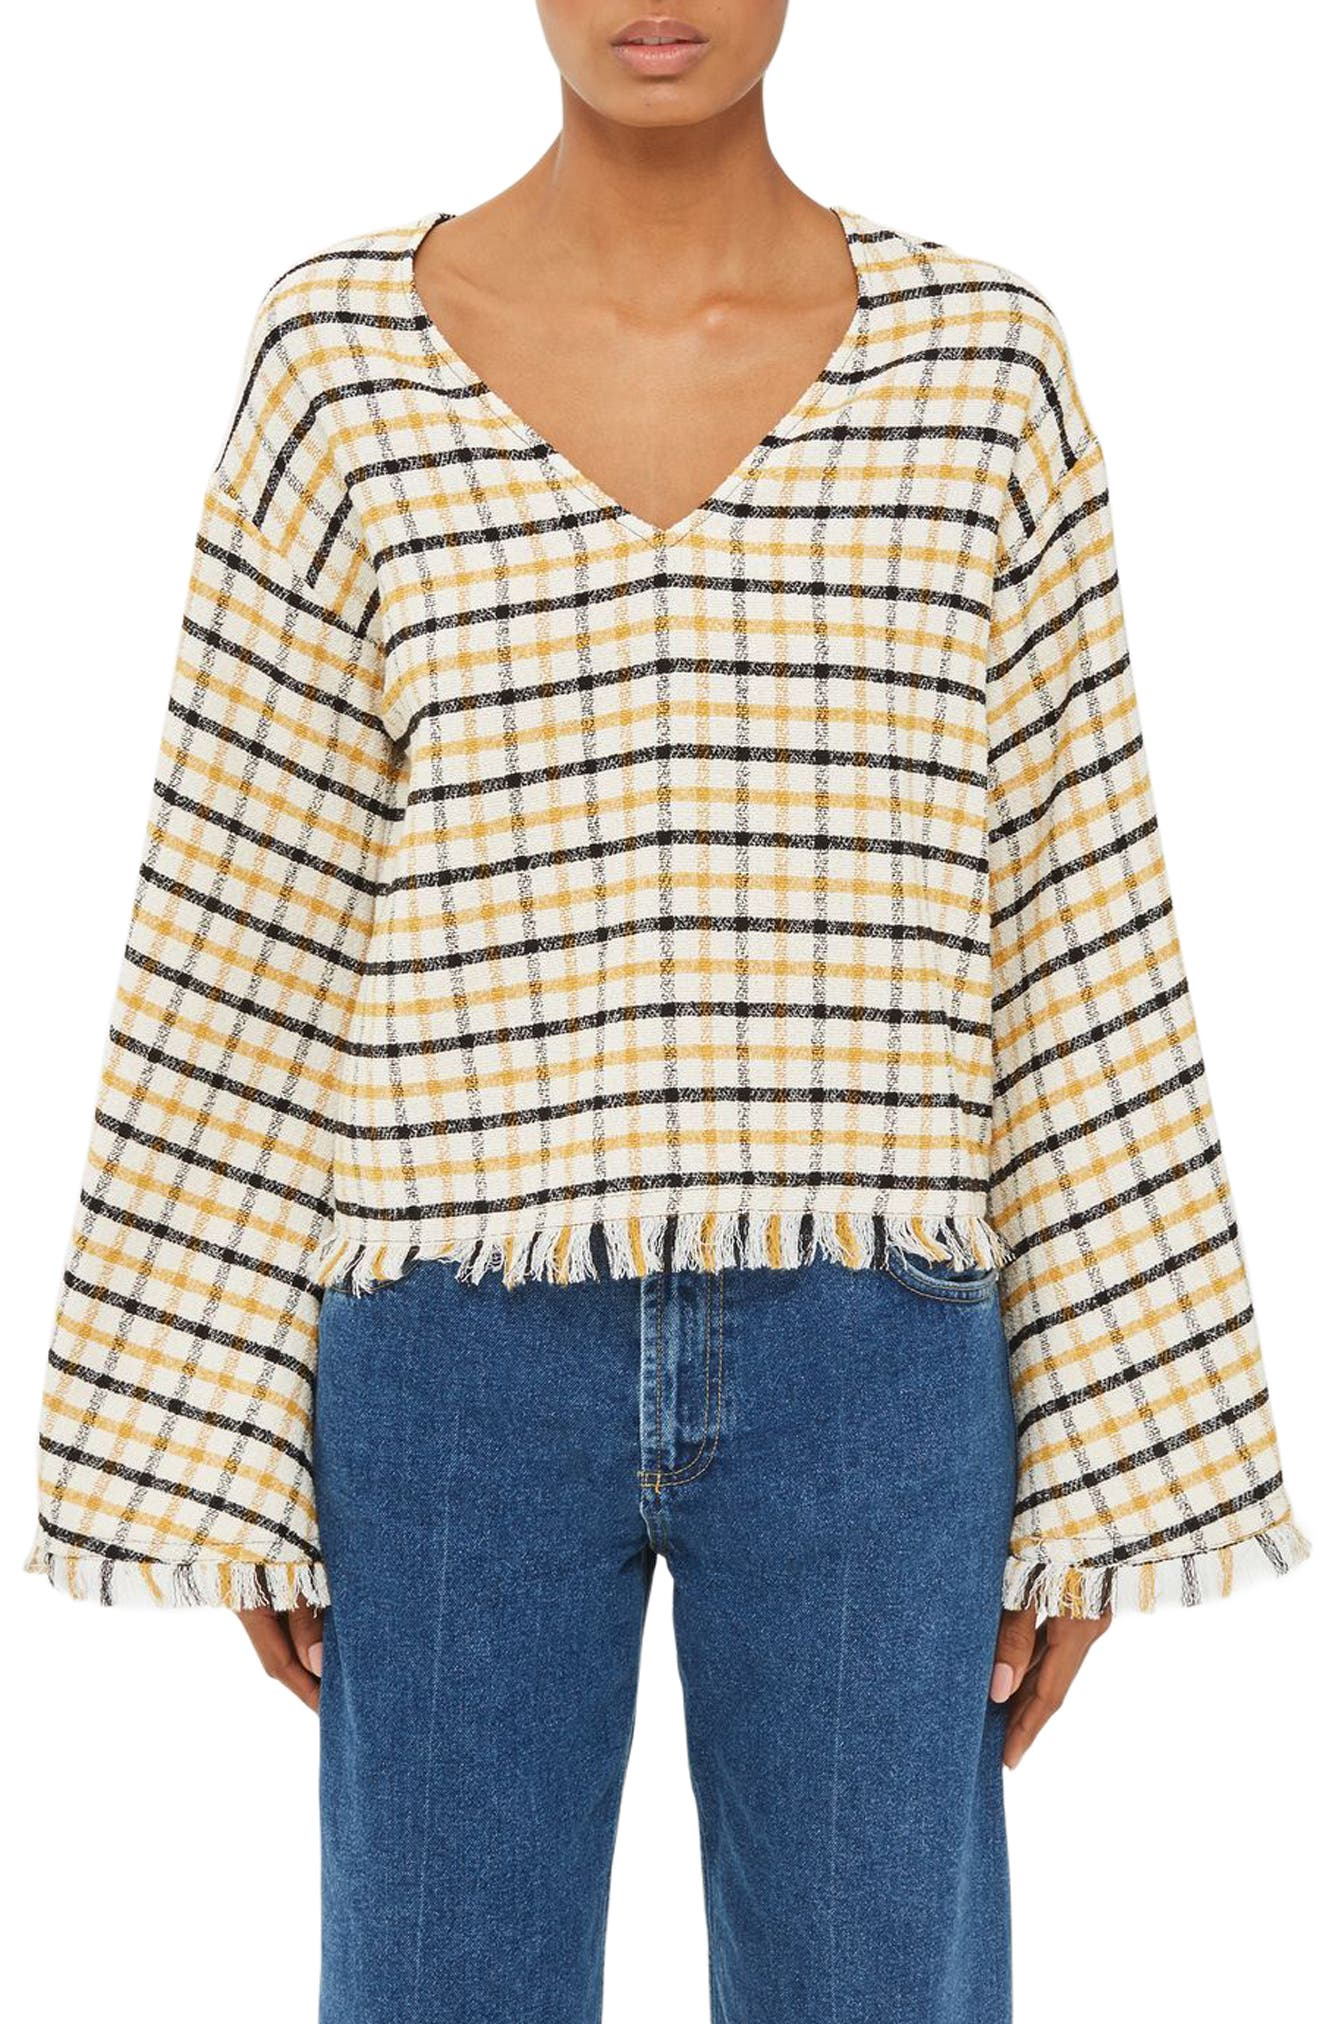 Topshop Boutique Check Flared Sleeve Blouse